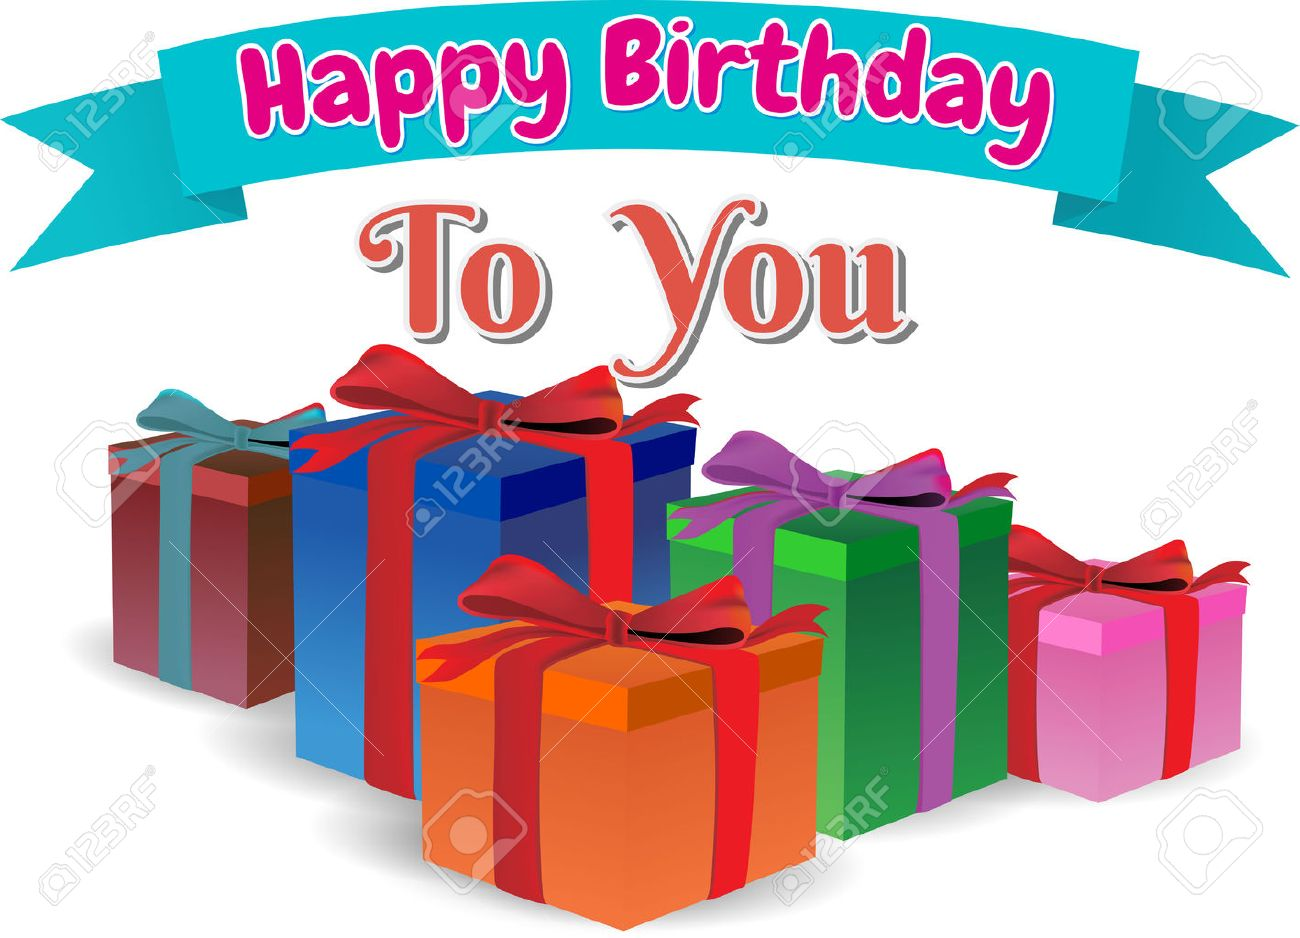 Happy birthday to you gift box full colors text on ribbon blue happy birthday to you gift box full colors text on ribbon blue stock negle Image collections